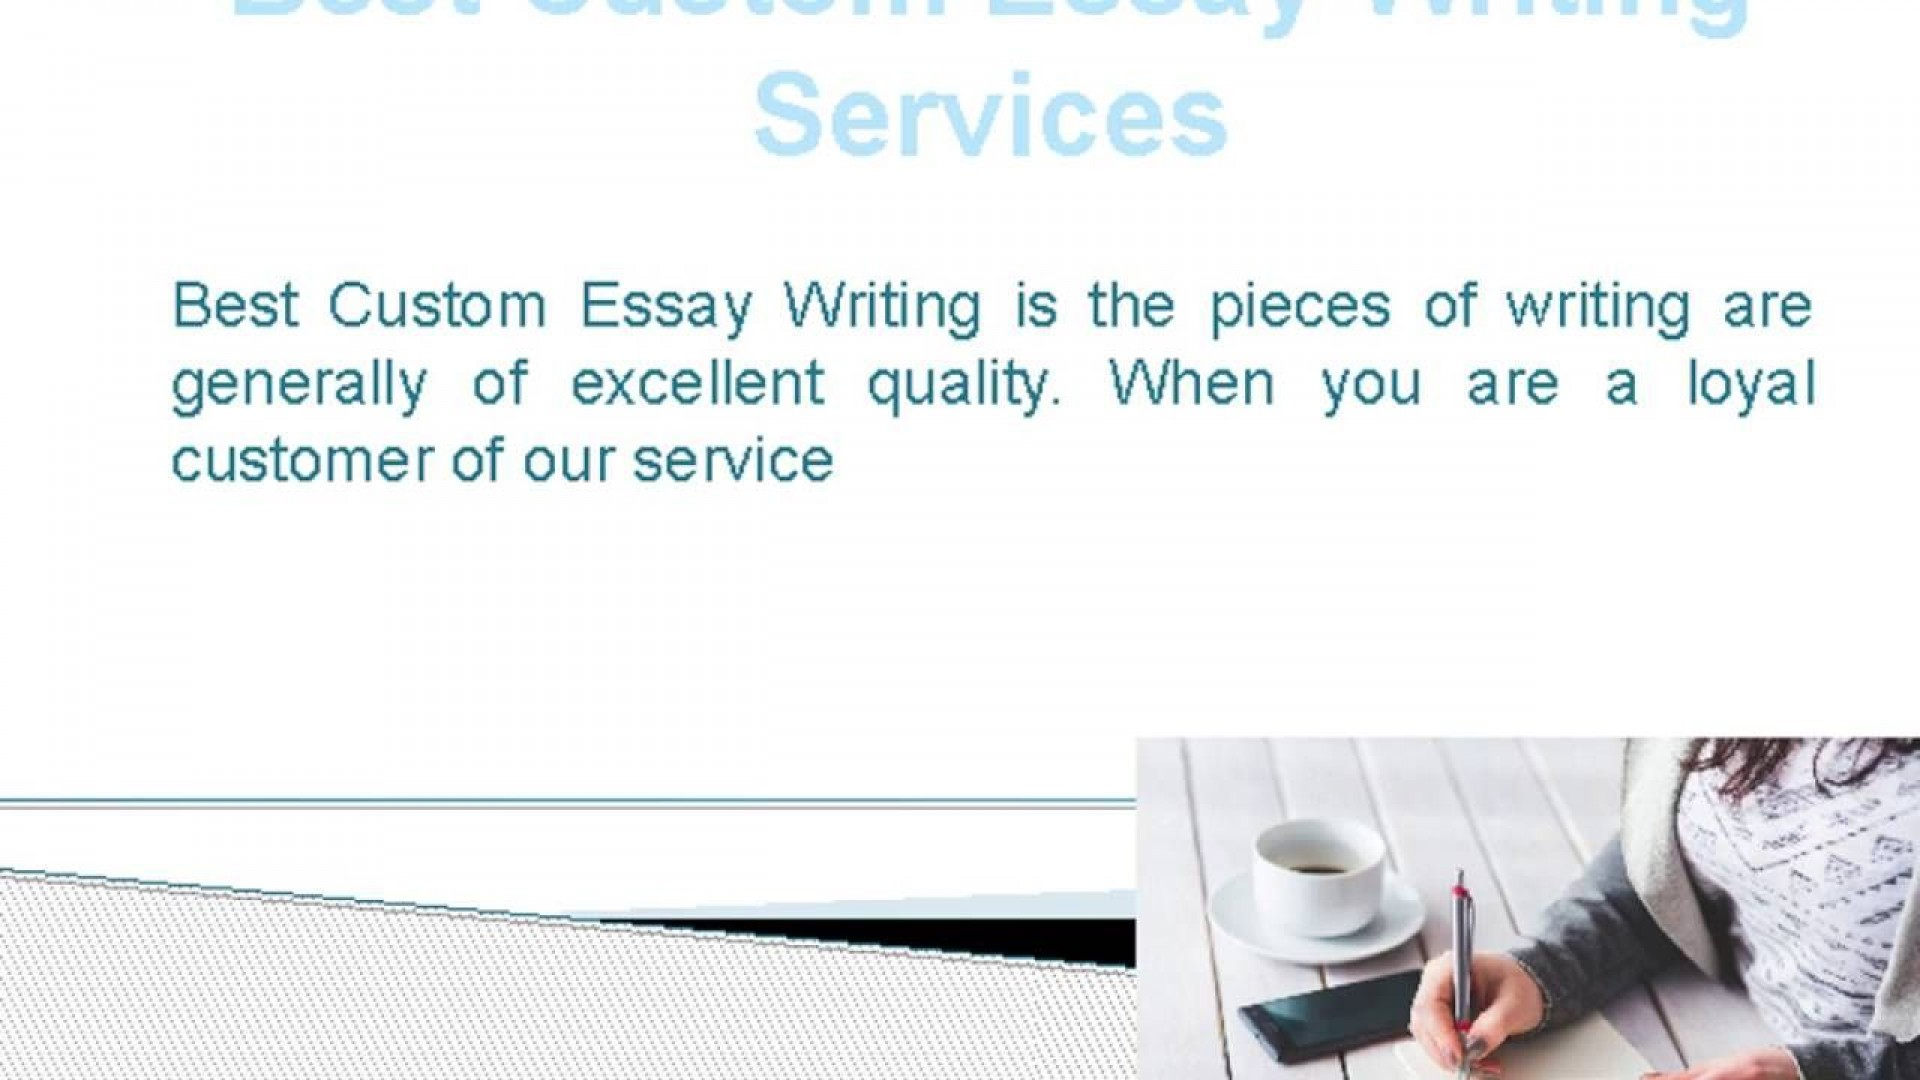 017 Free Essay Writer Example Astounding Online No Plagiarism 1920